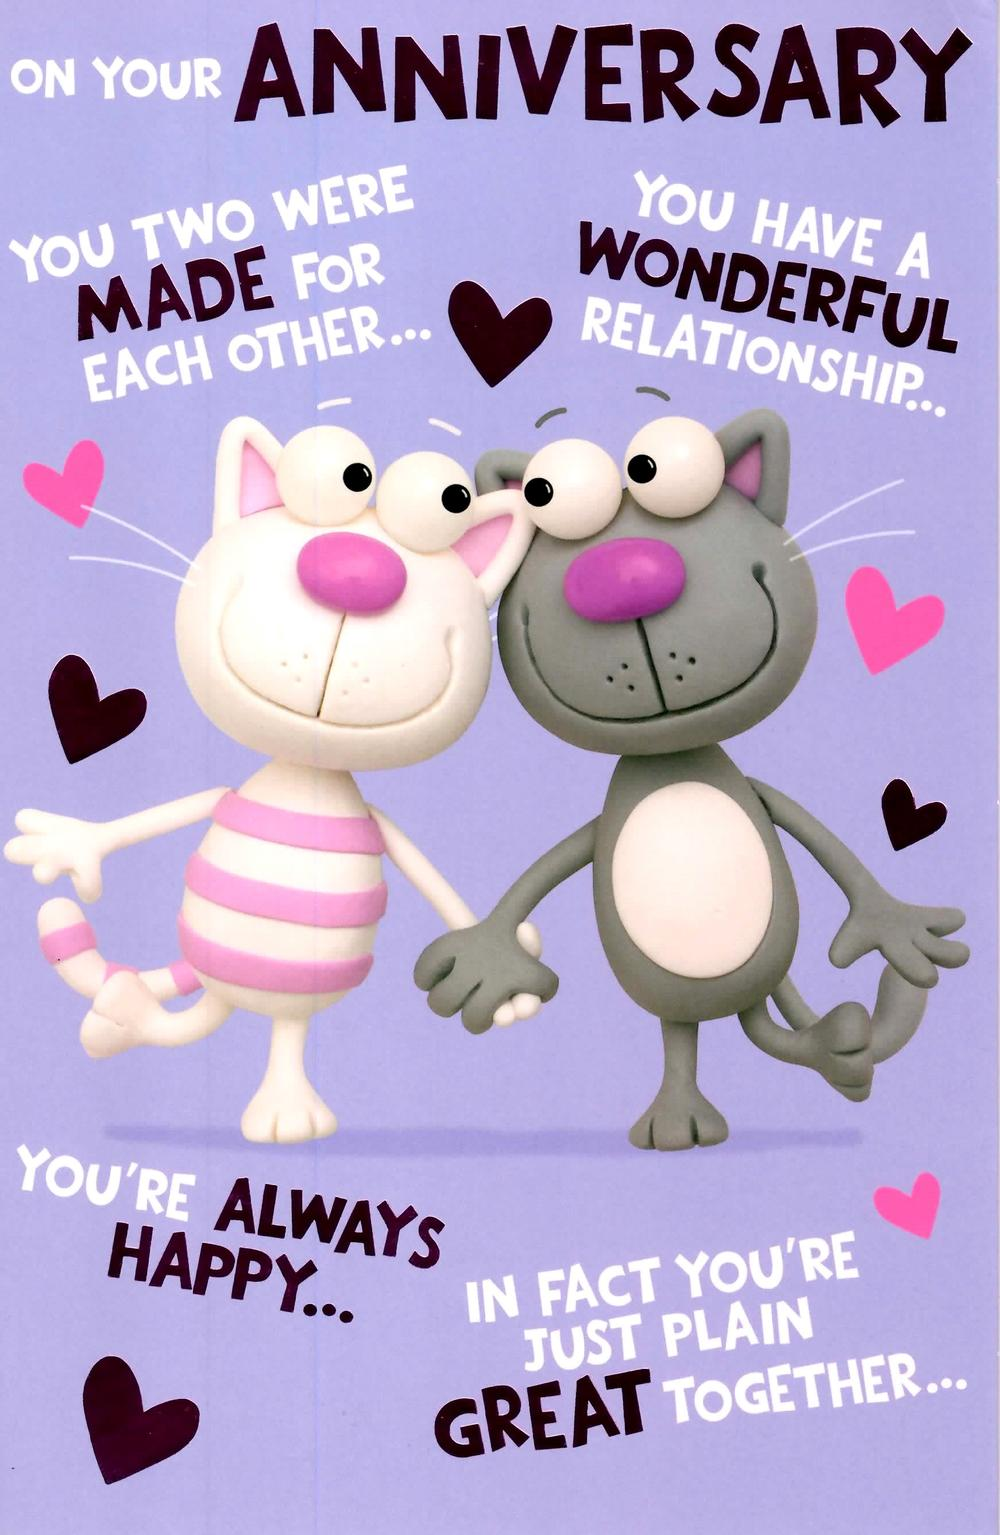 Cute Funny On Your Anniversary Greeting Card